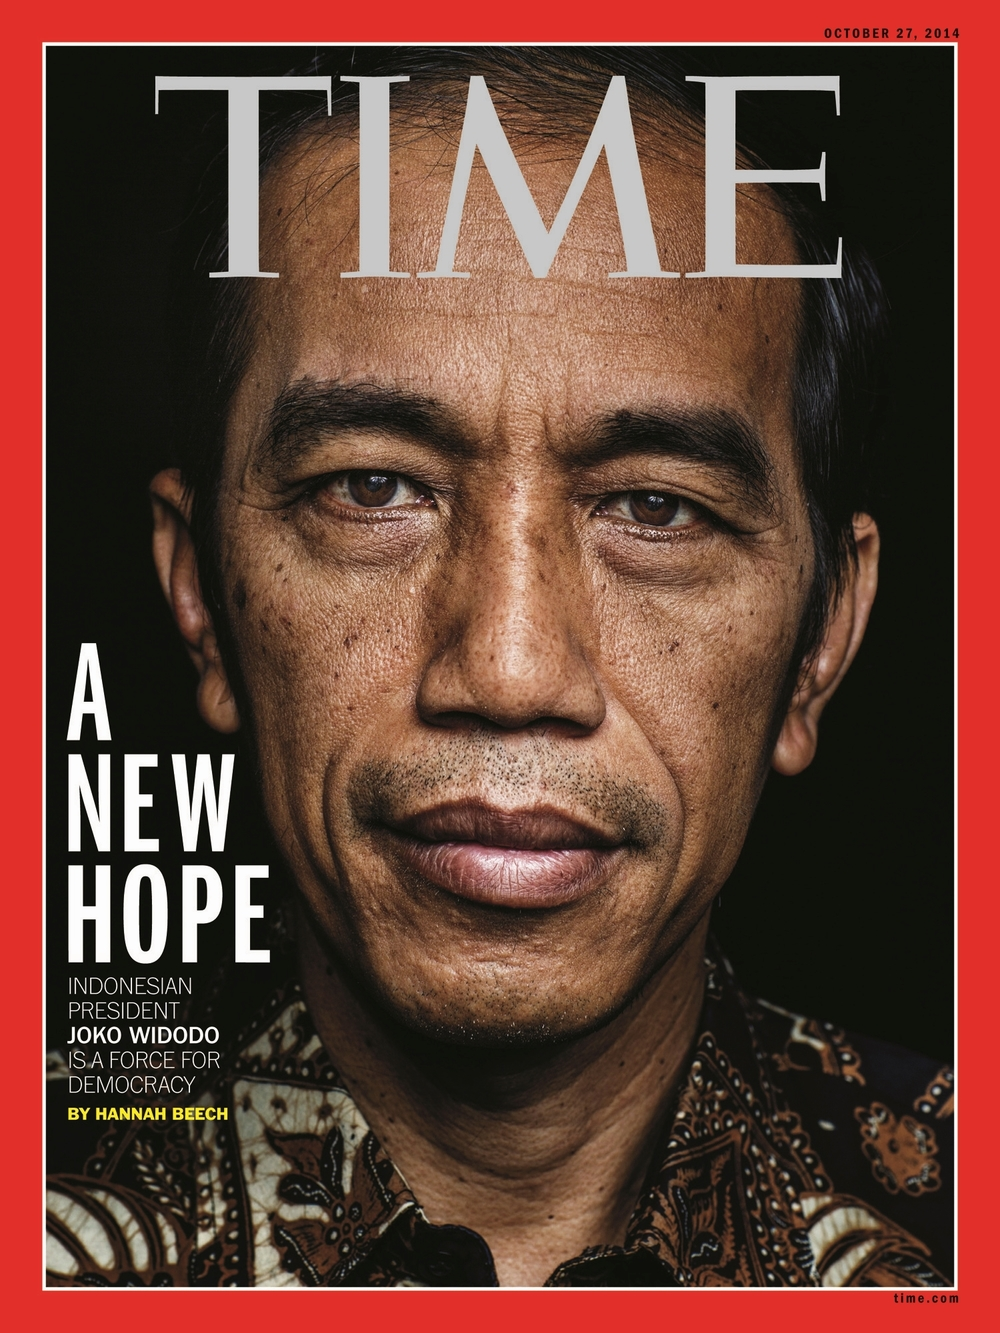 'A New Hope', Time Magazine, October 27, 2014.